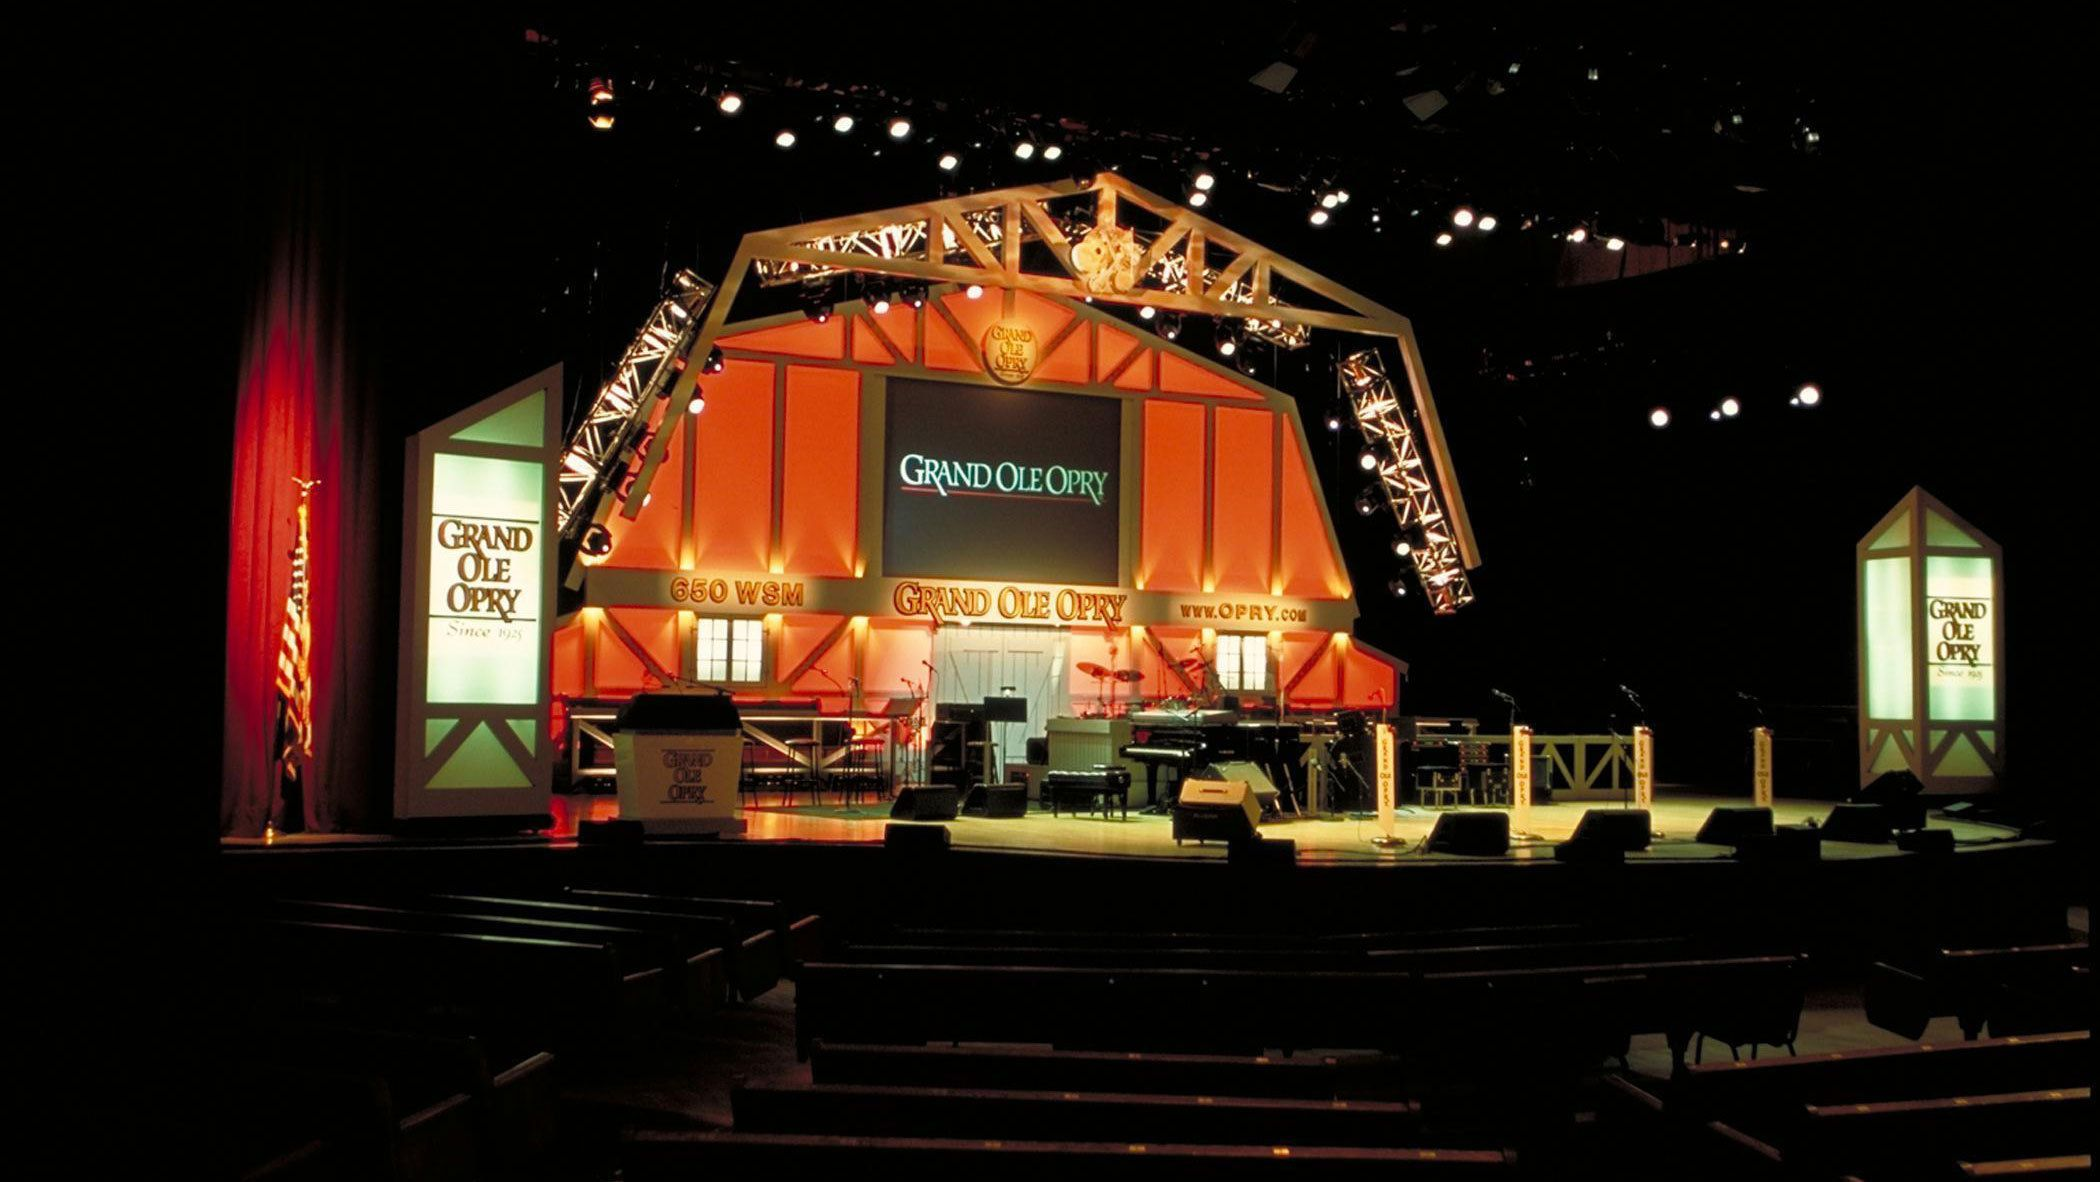 Set up stage at the Grand Ole Opry House in Nashville